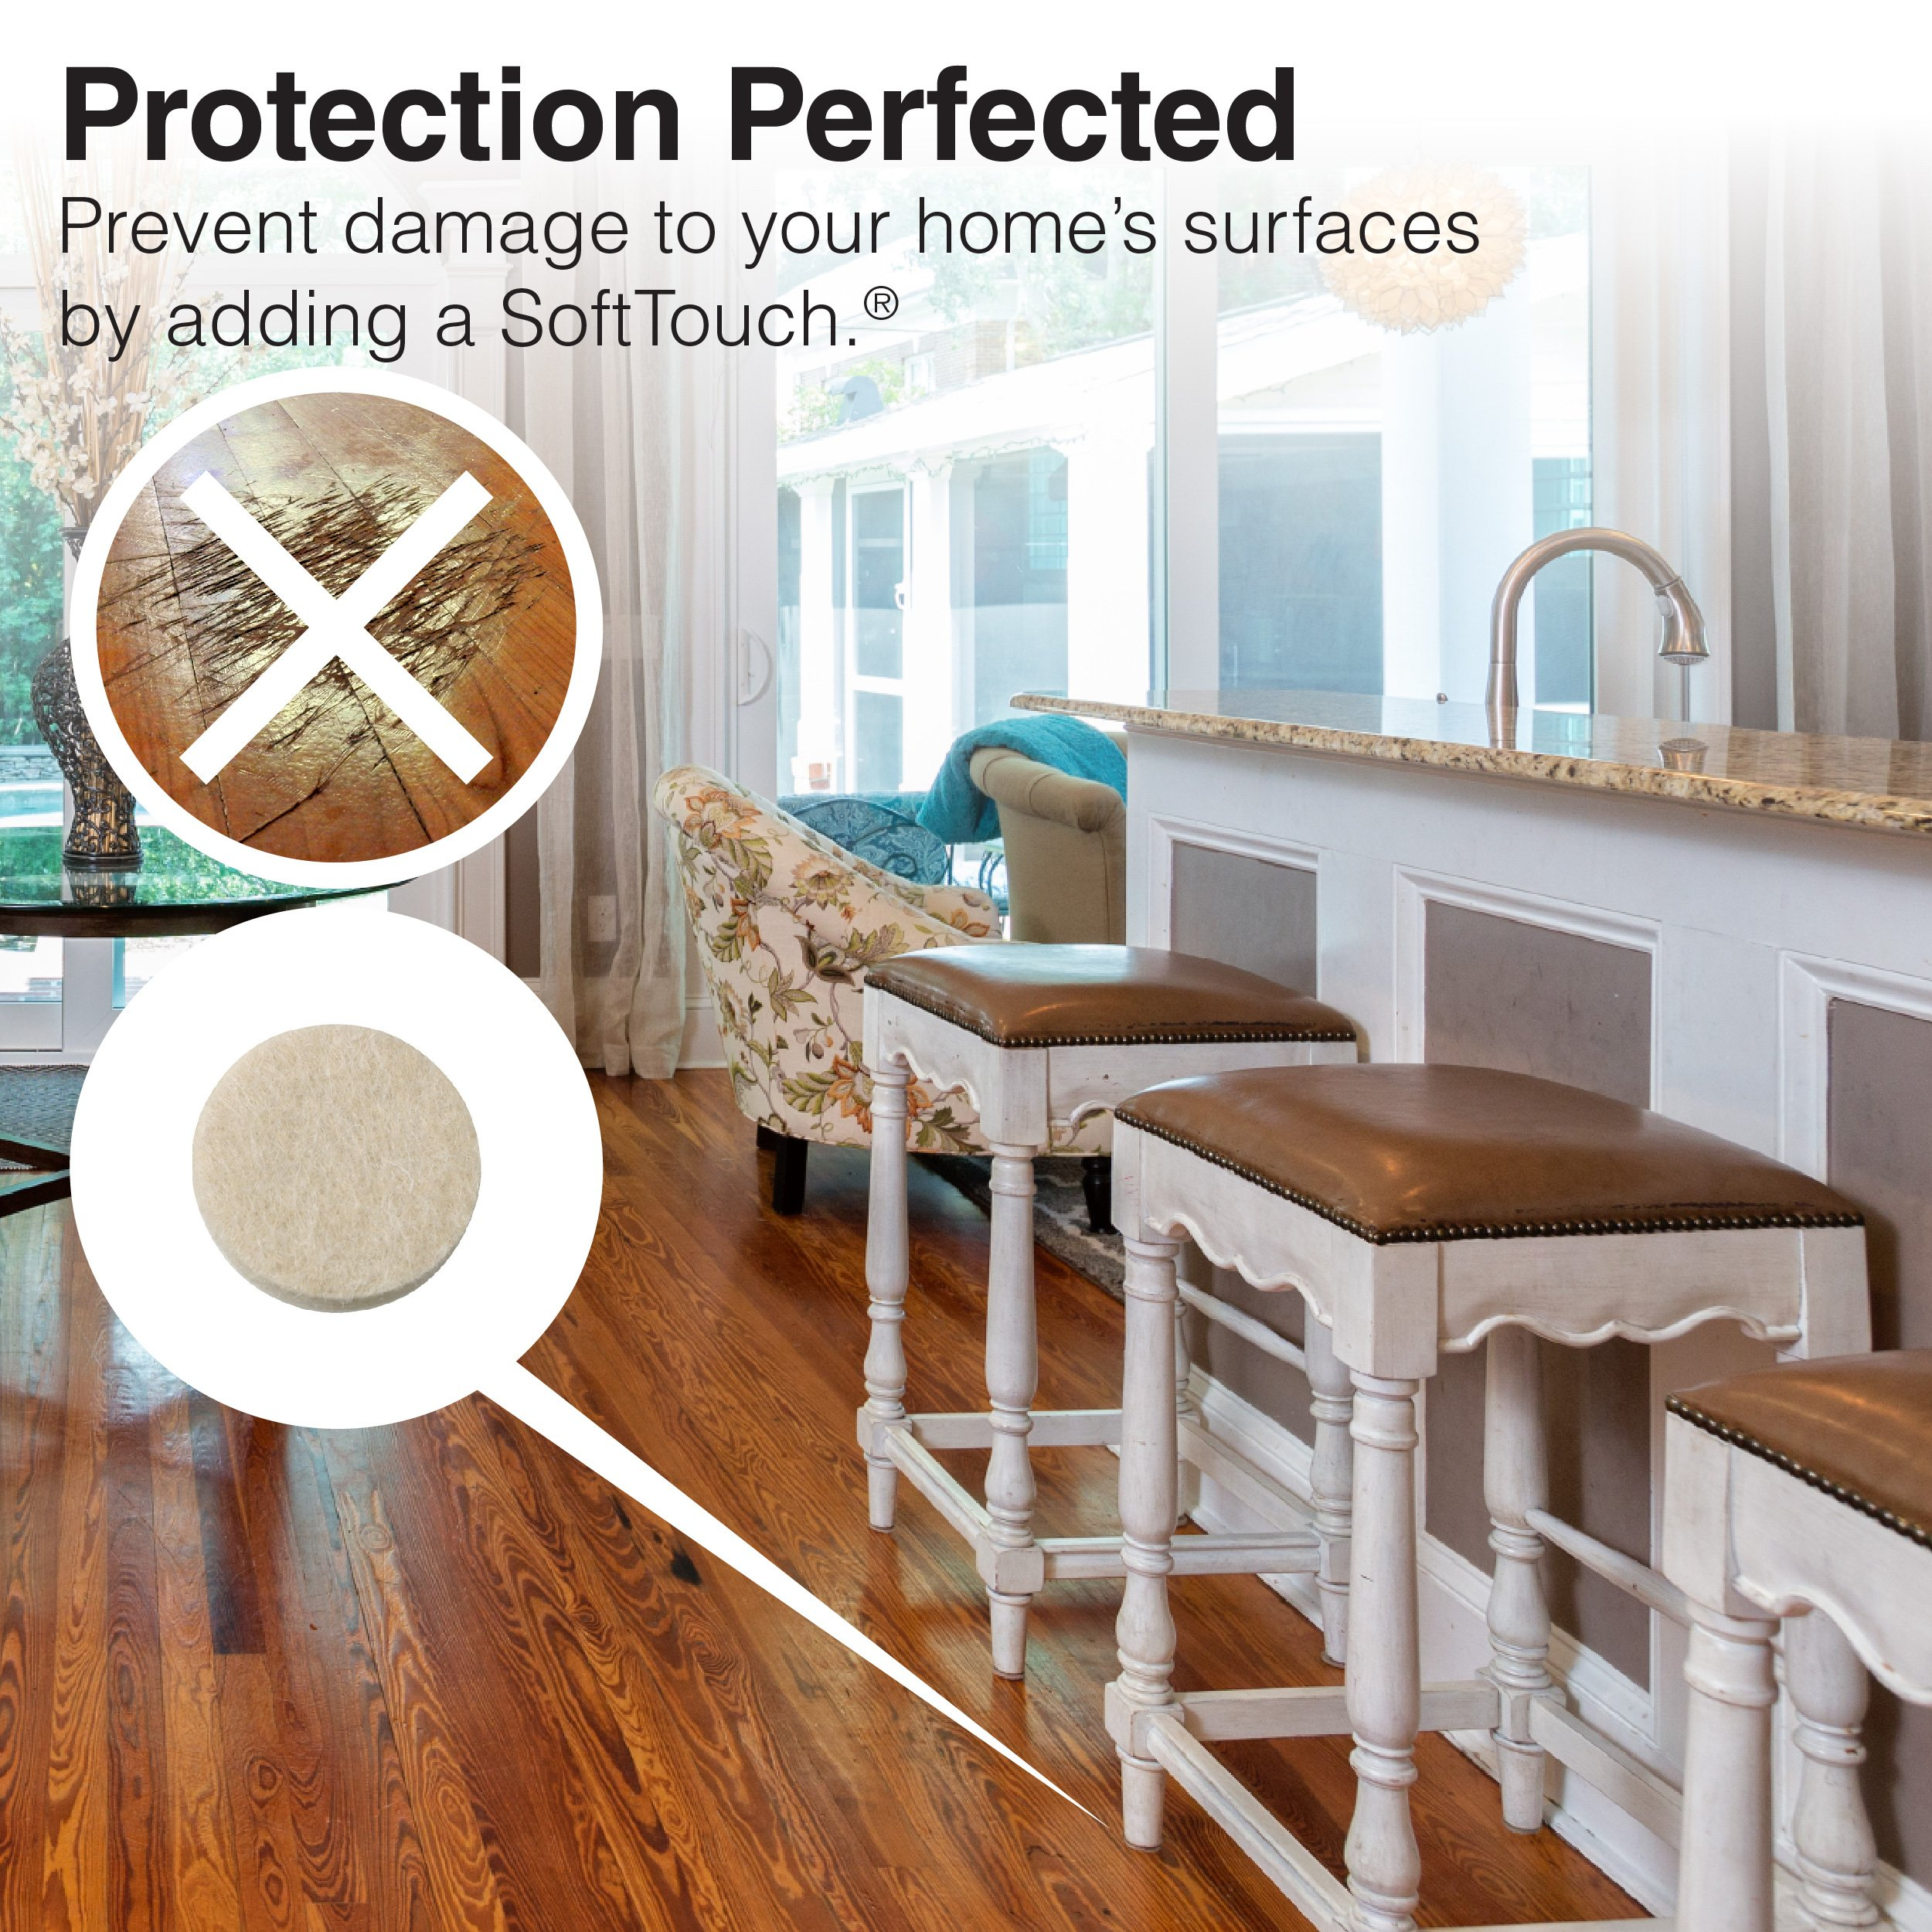 SoftTouch 80 Piece Pack In Linen, Self Stick Heavy Duty Furniture Felt Pads  In Two Sizes For Tables And Chairs. Protect Your Hardwood Floors U0026 Tile  From ...